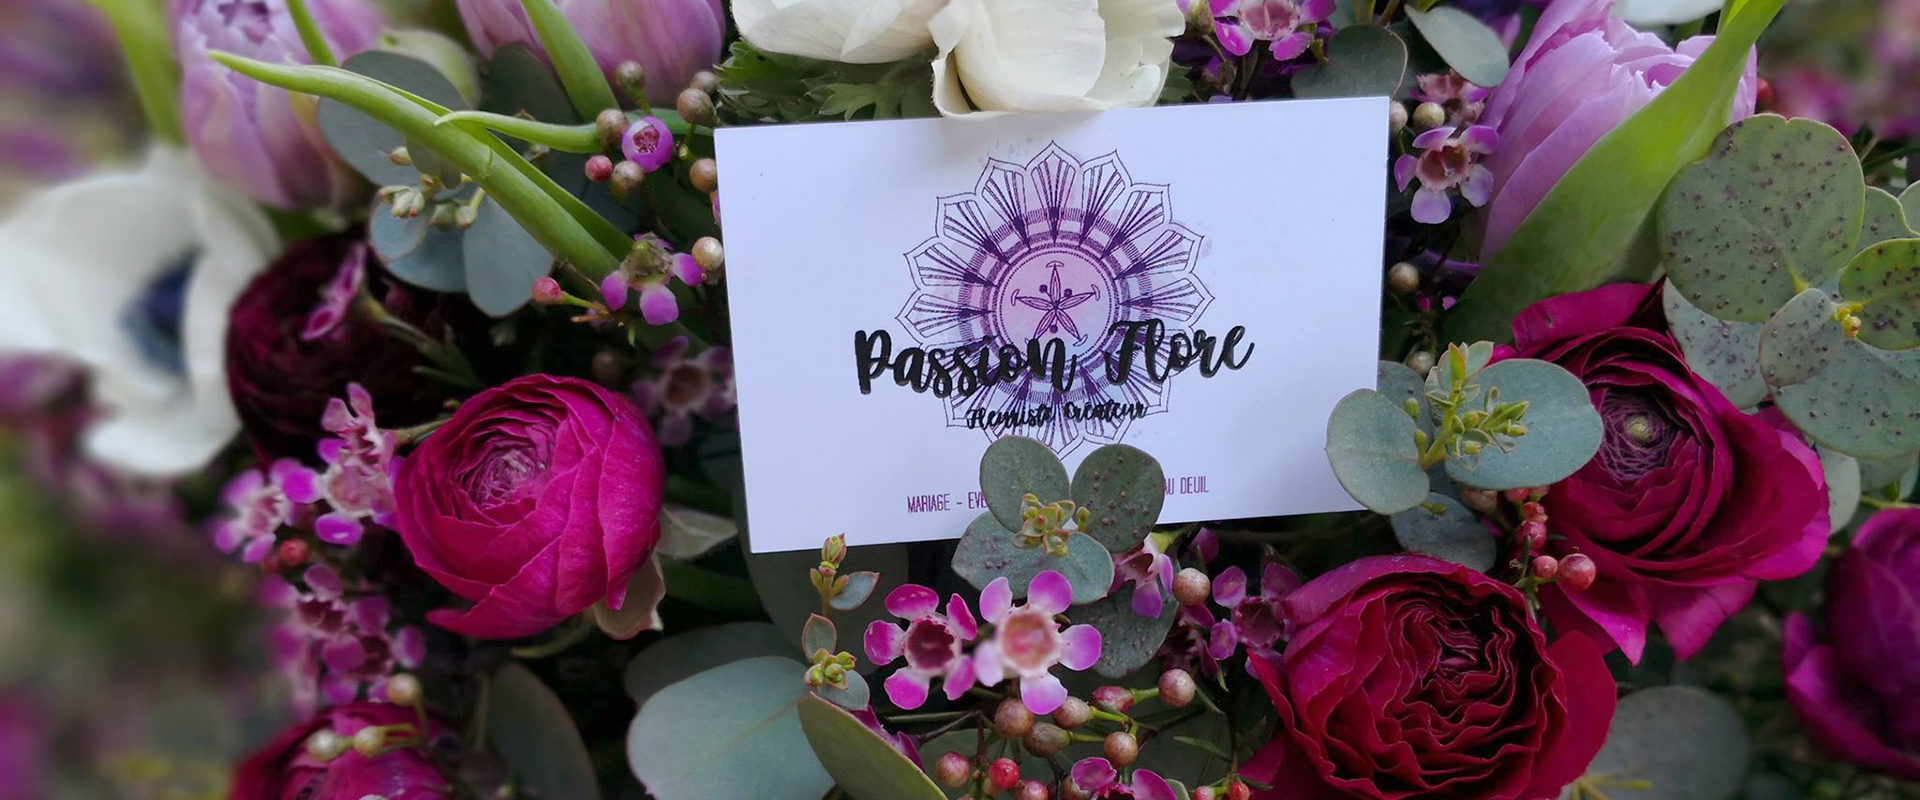 PASSION FLORE - CARTES DE VISITE SUR BOUQUET